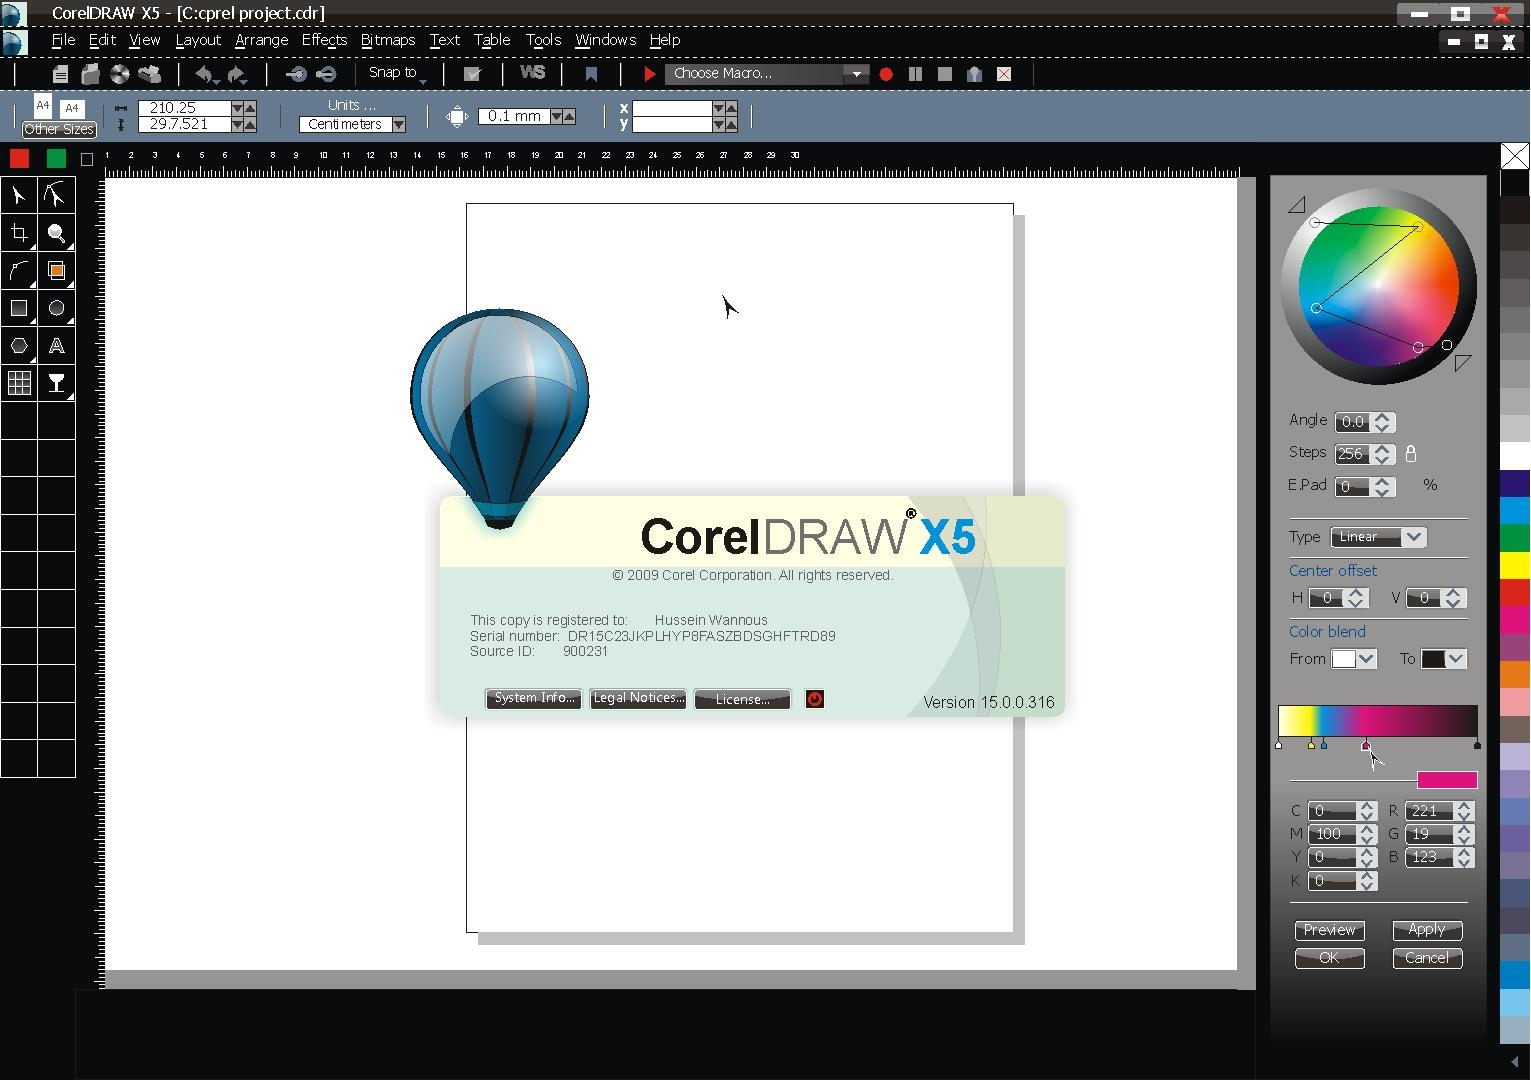 Corel draw for windows 7 - Corel X5 2 Jpg